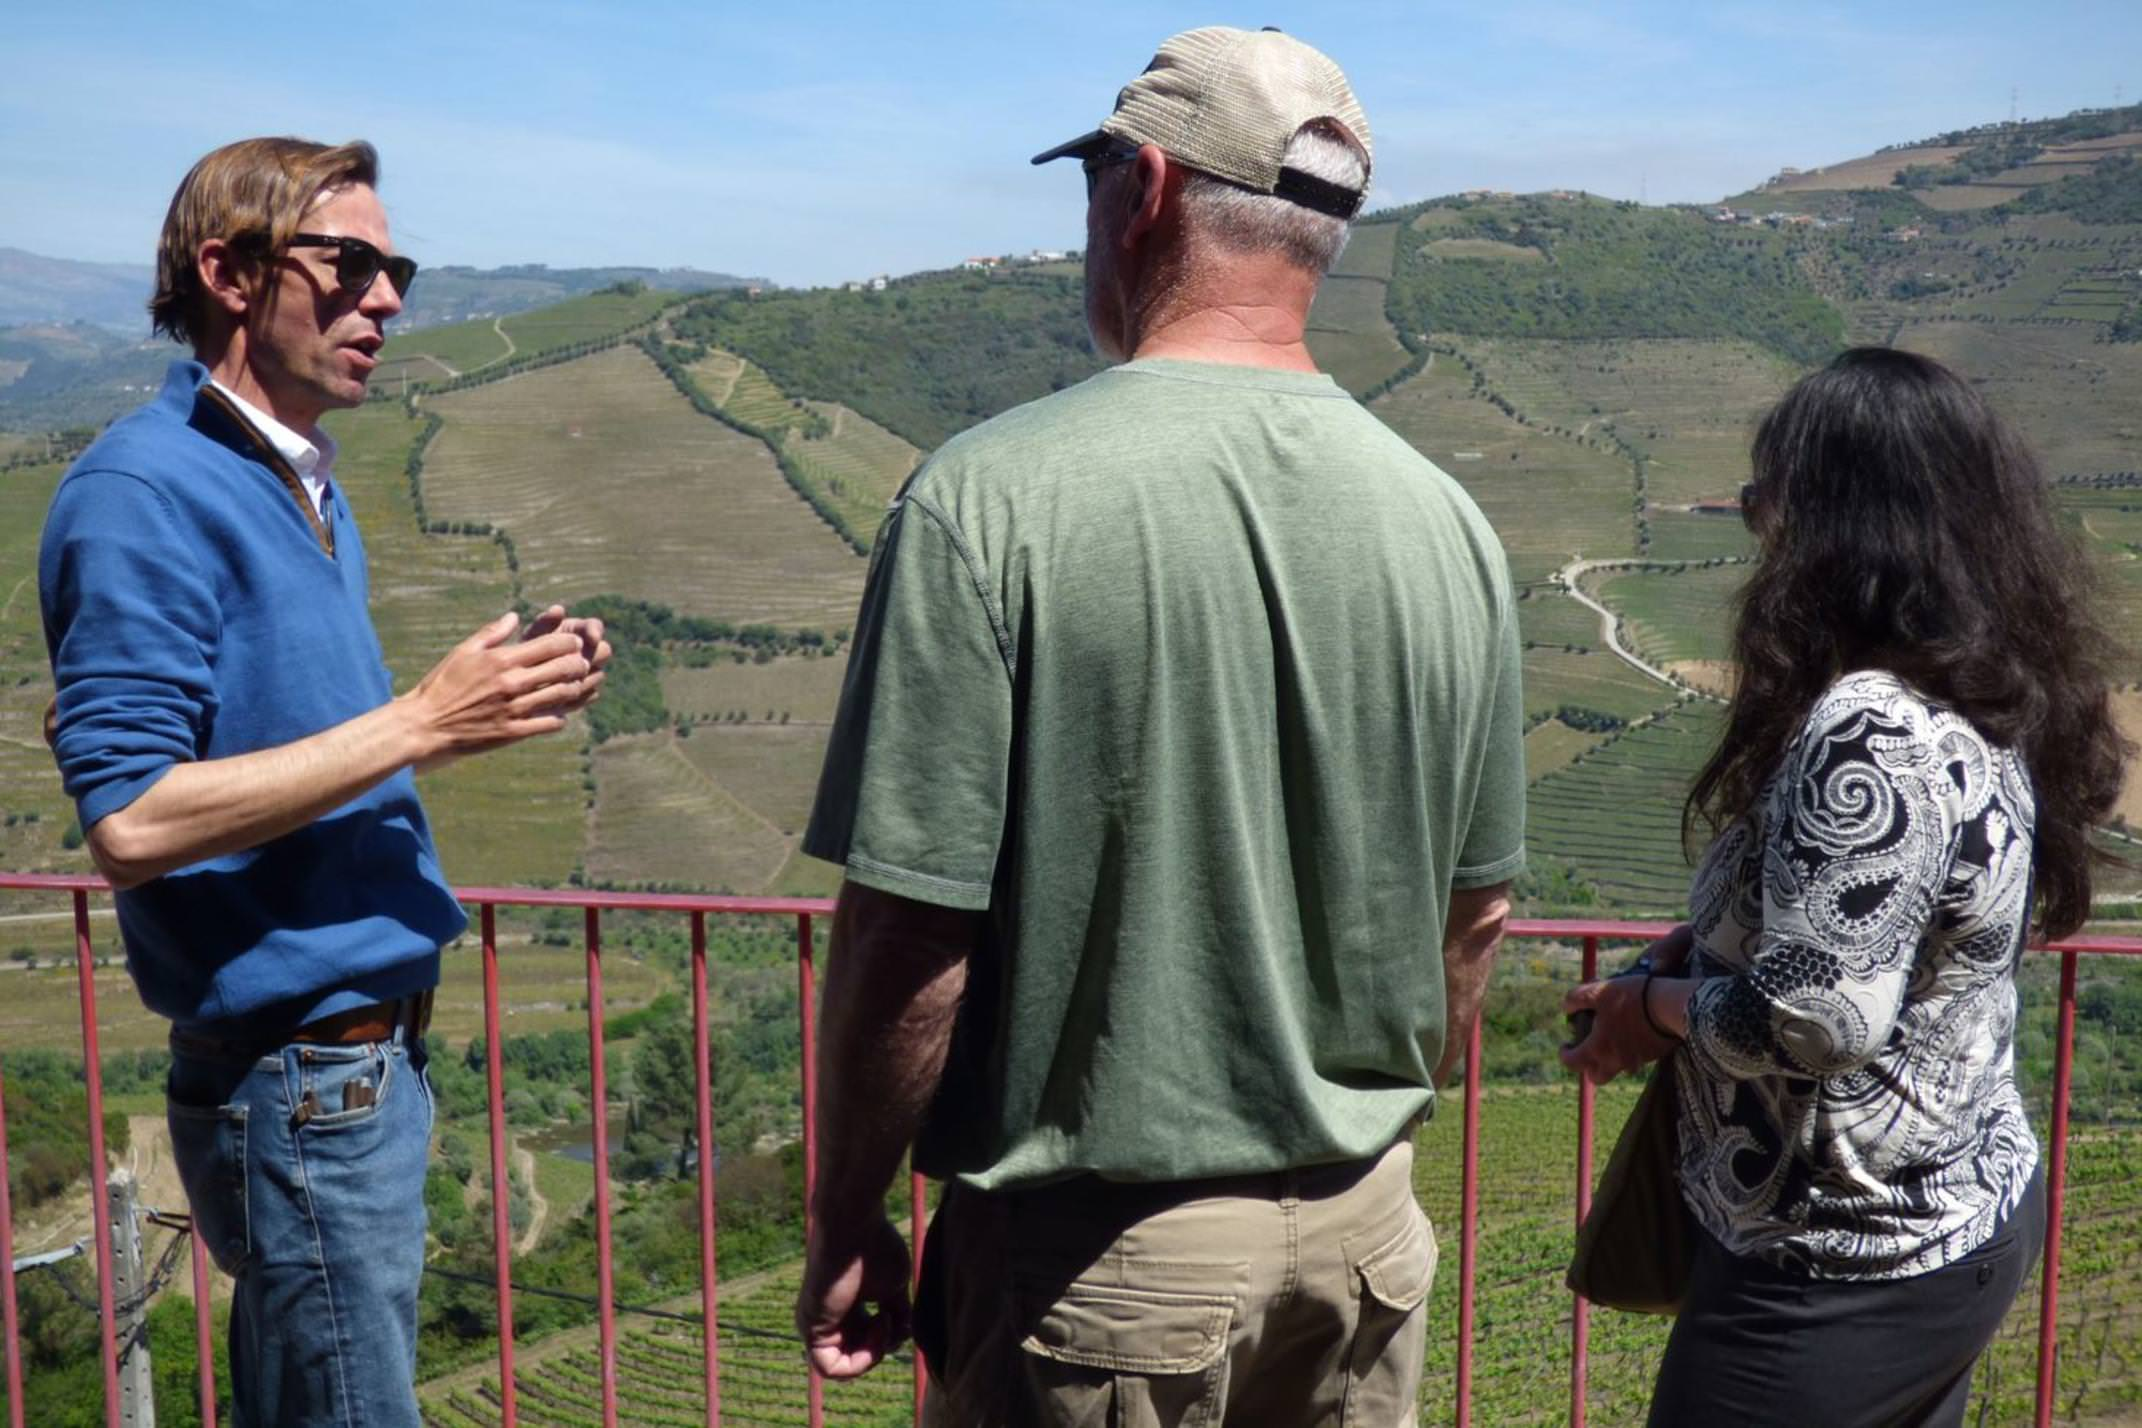 Paulo's giving great insights into his parents' winery